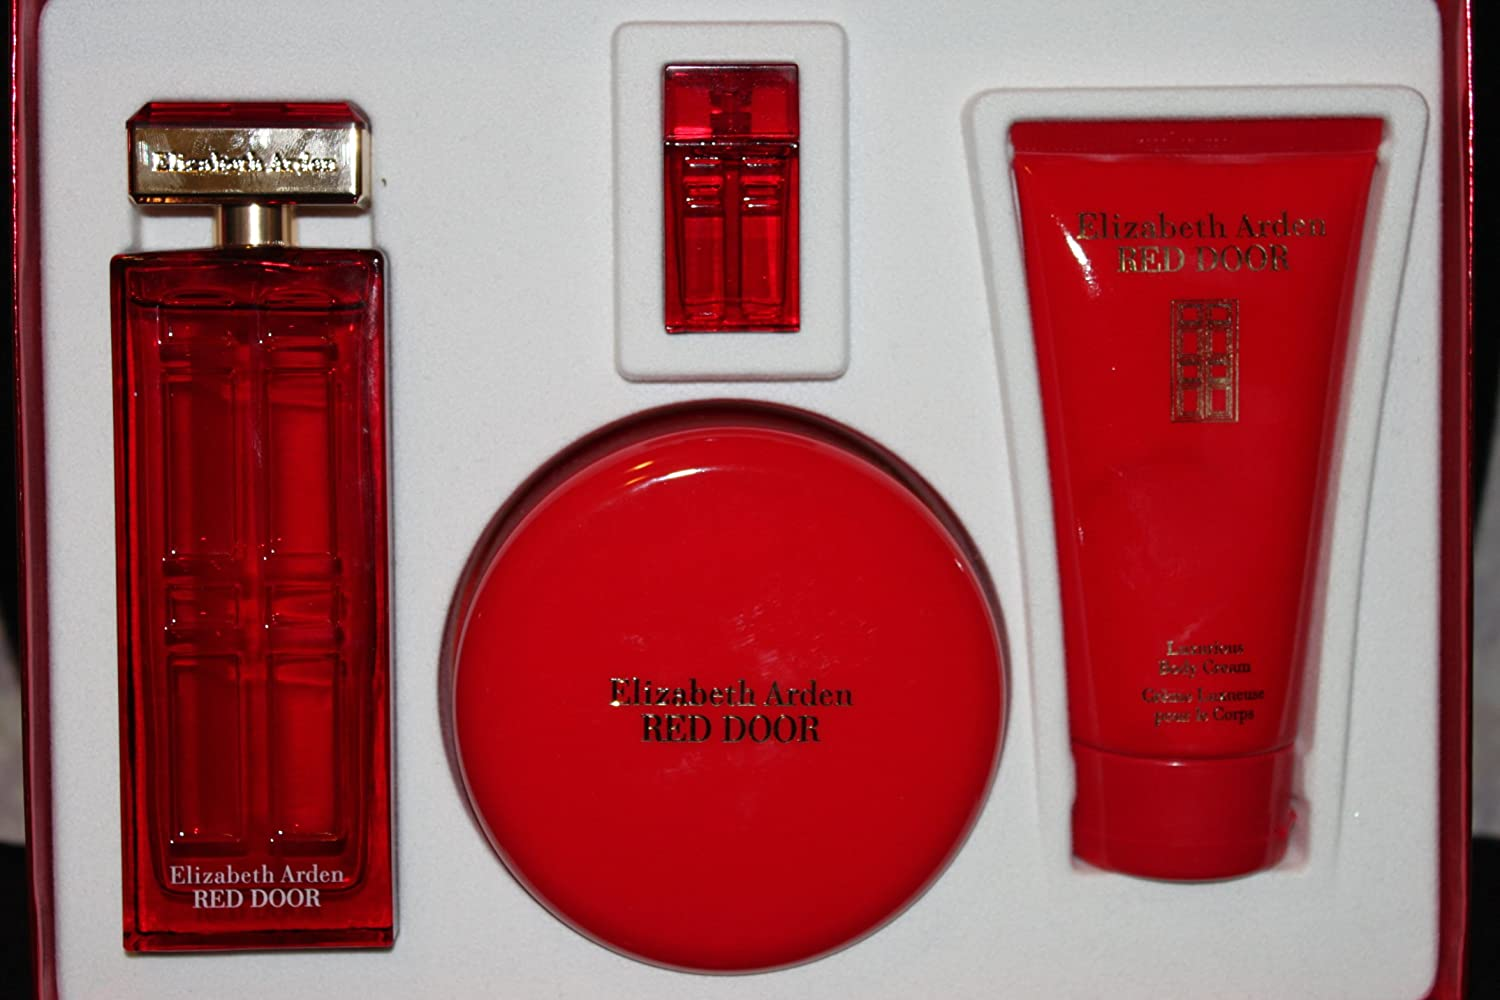 Elizabeth Arden Red Door 4 pc gift set (100ml edt spray+perfumed body powder 75g+edp 5ml+body cream 150ml)